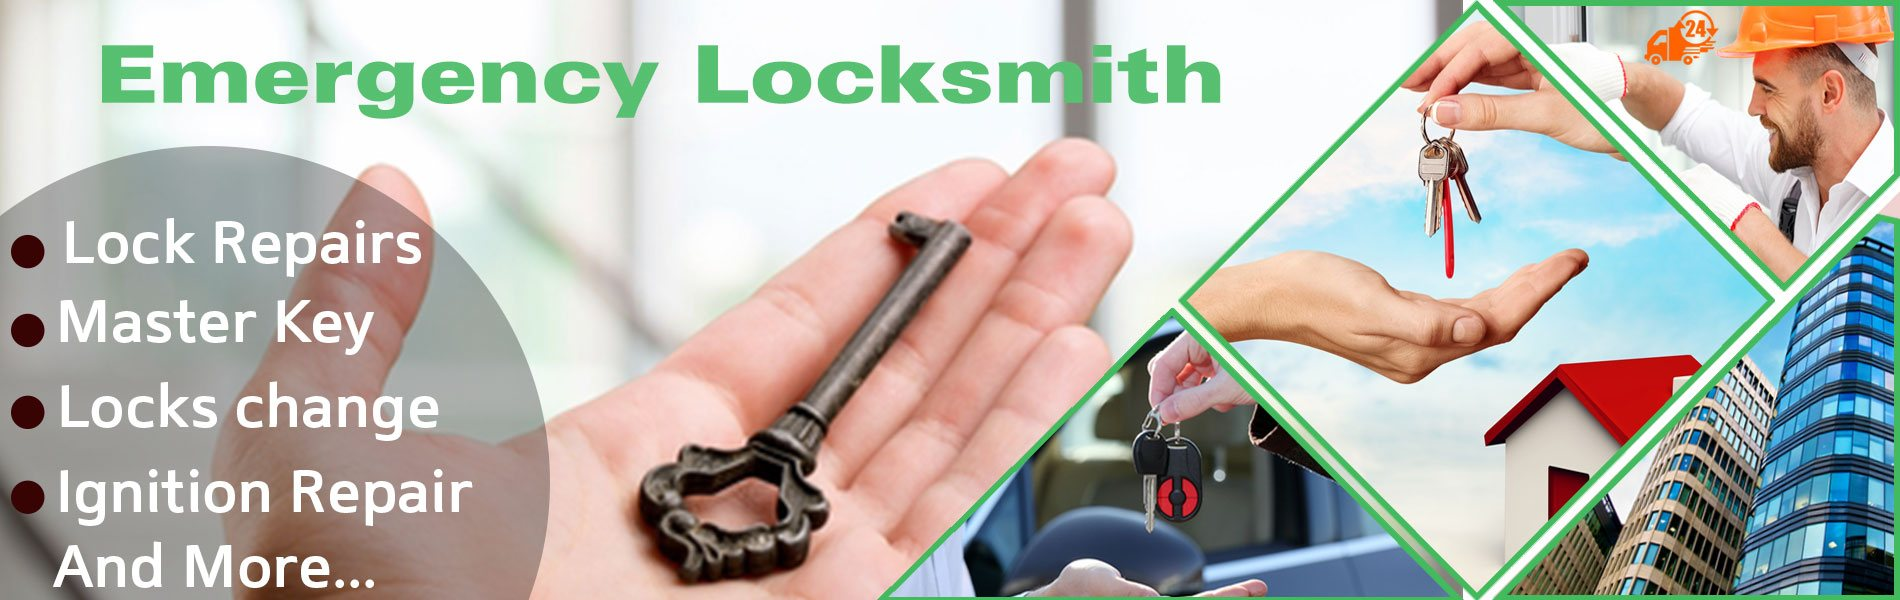 Lock Safe Services Redford, MI 313-758-6119